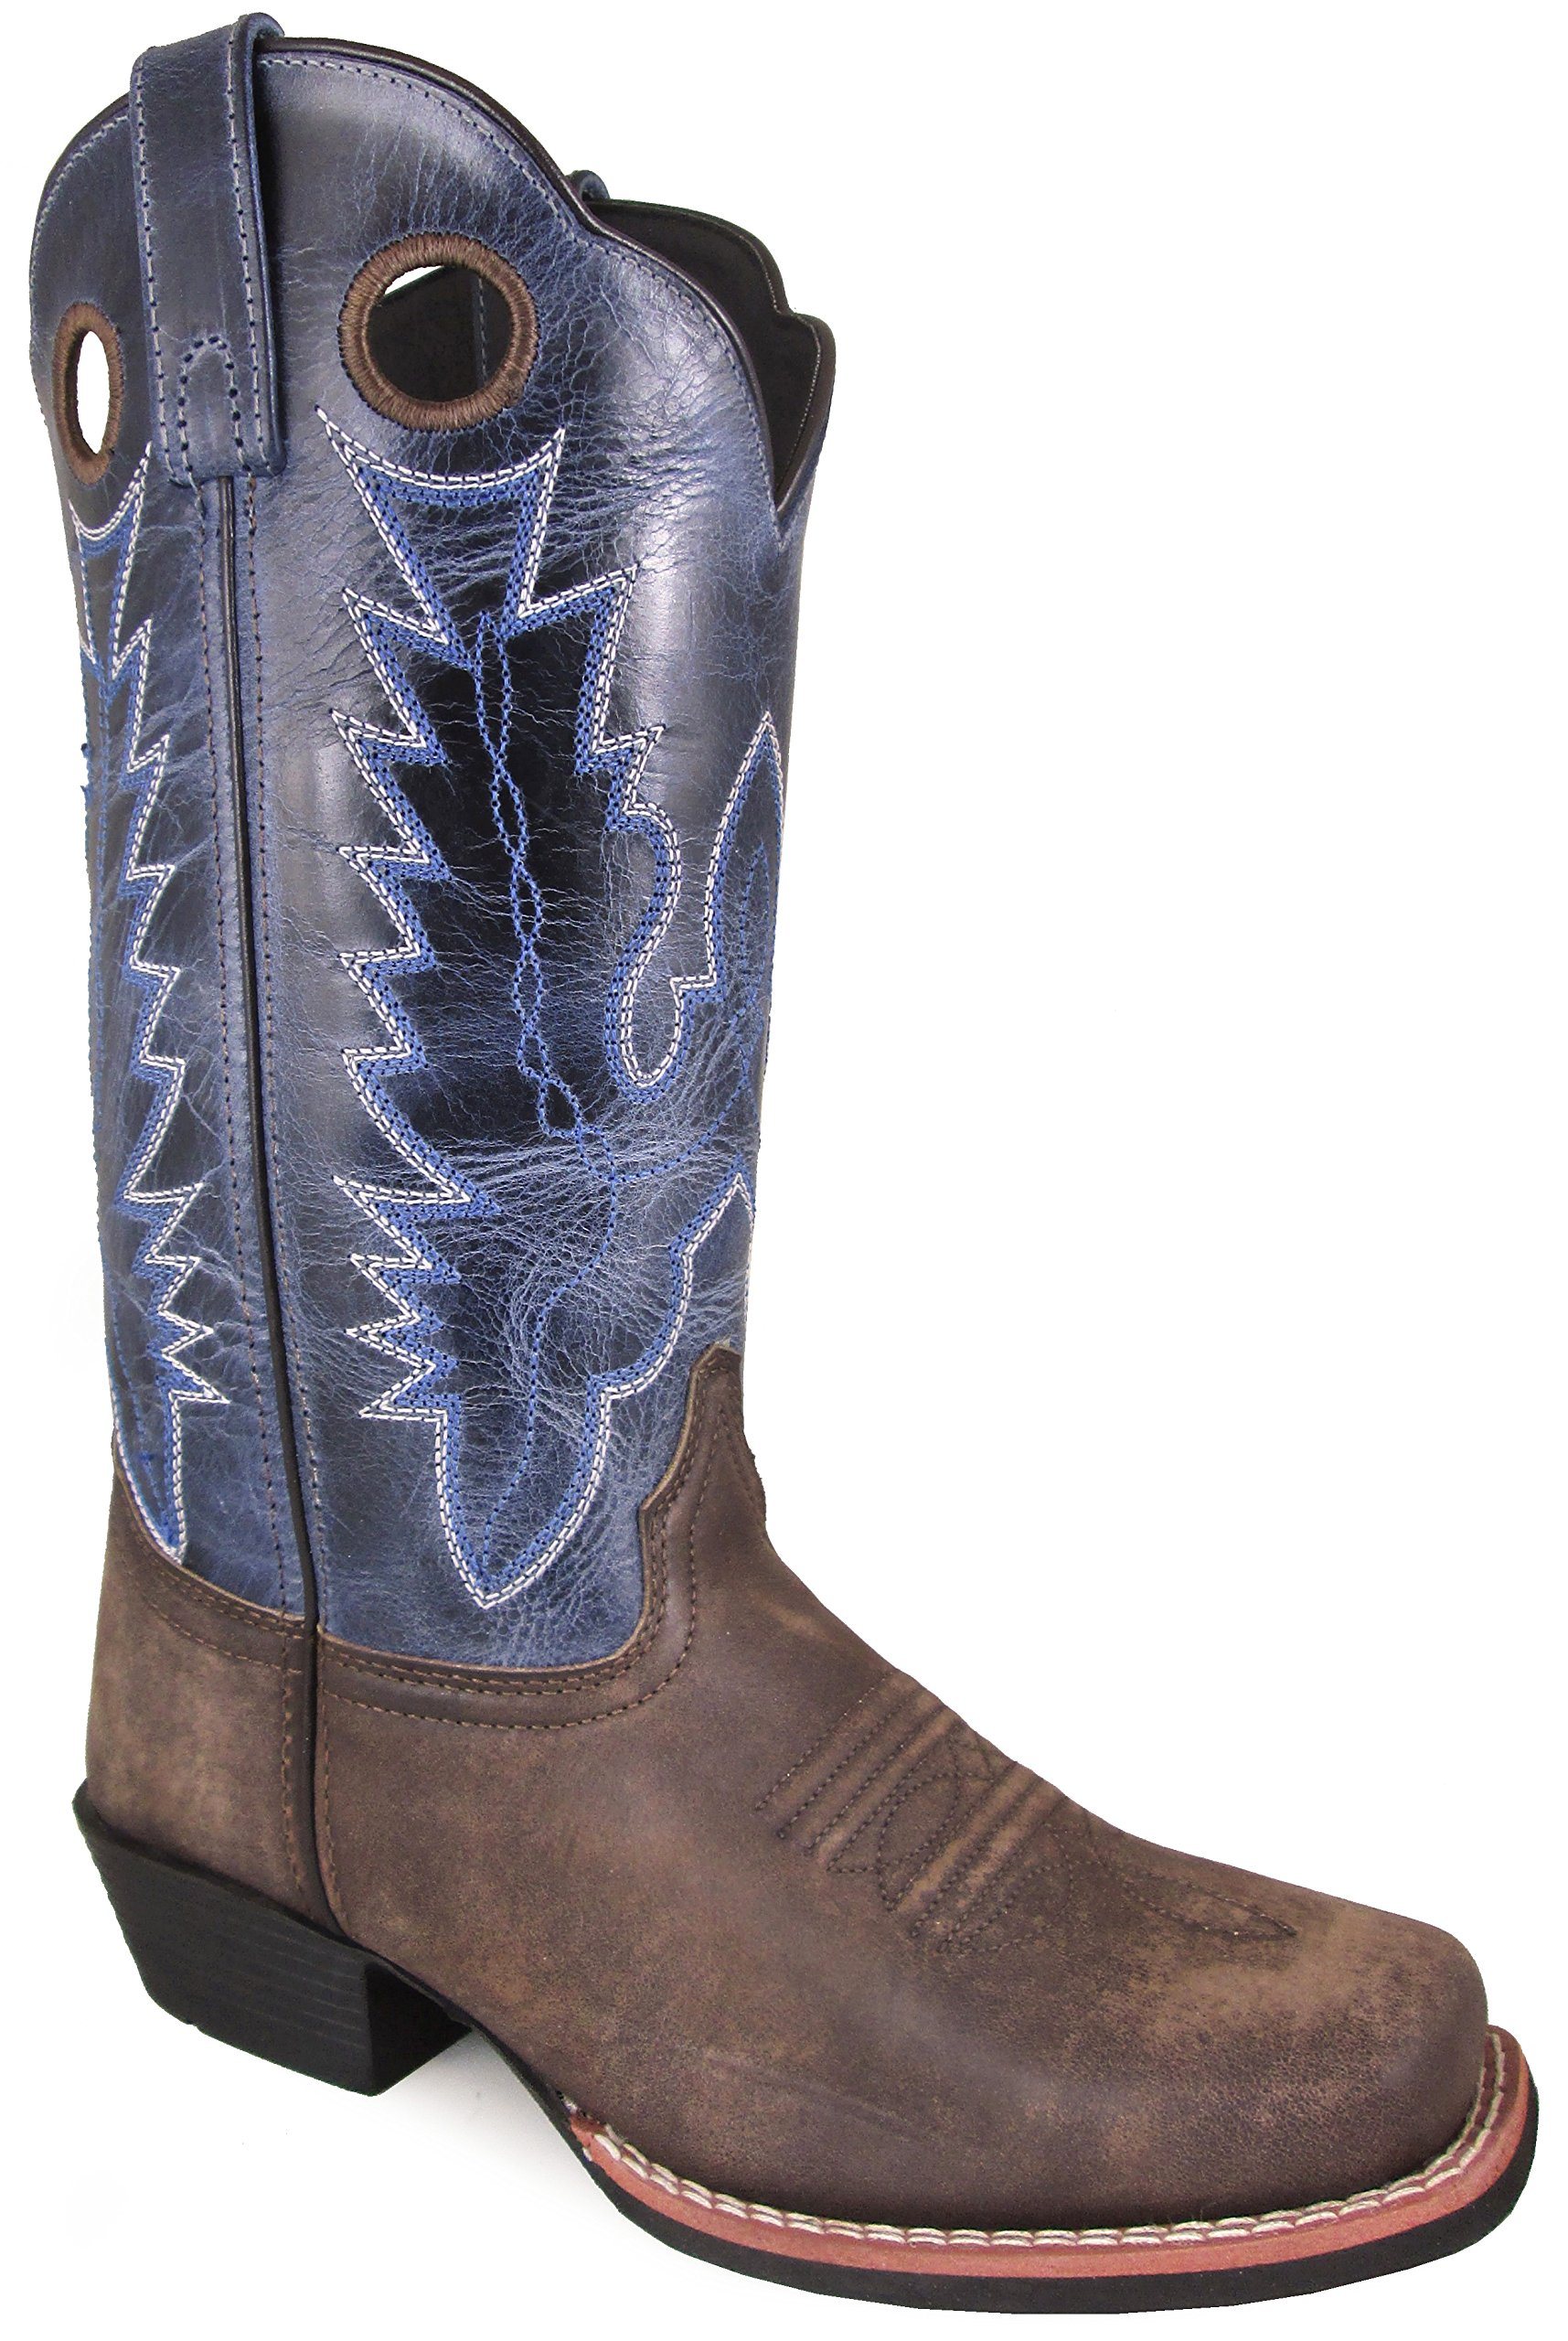 Smoky Mountain Women's Mesa Square Toe Pull On Brown Oil Distressed/Navy Crackle Boots 9M